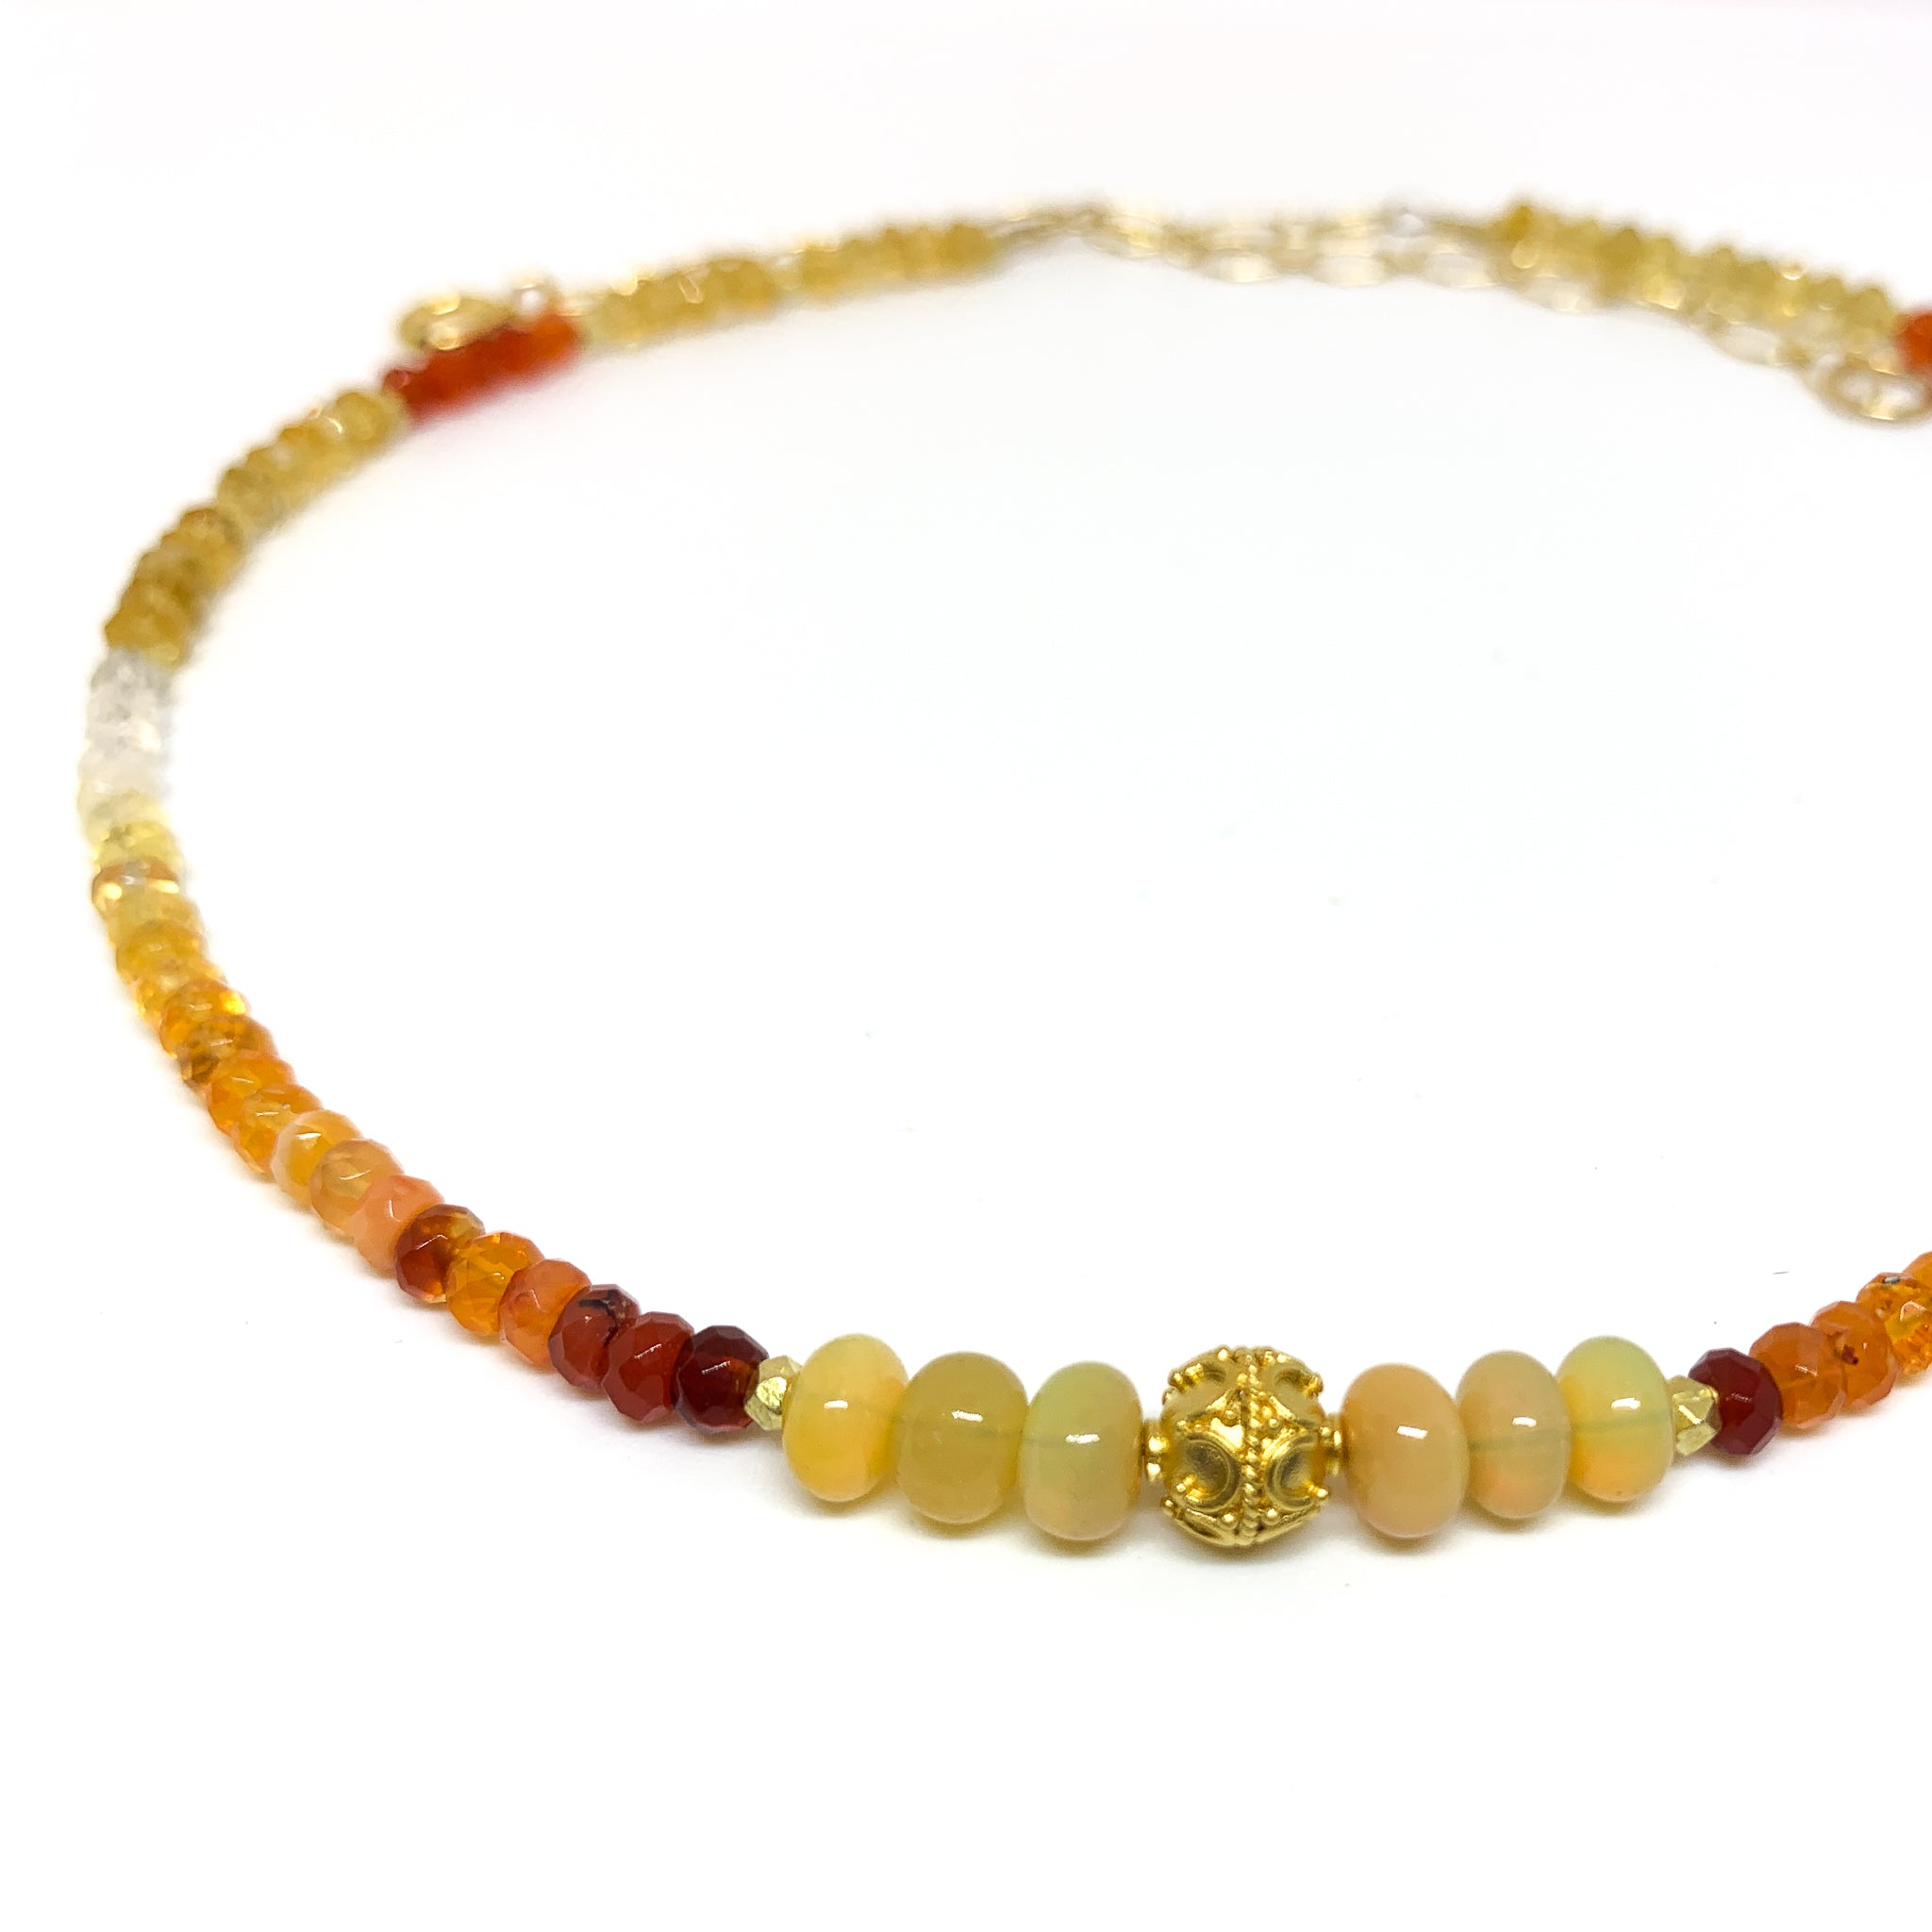 Fire opal necklace with vermeil bead on short 14 karat gold fill necklace eve black jewelry Hawaii